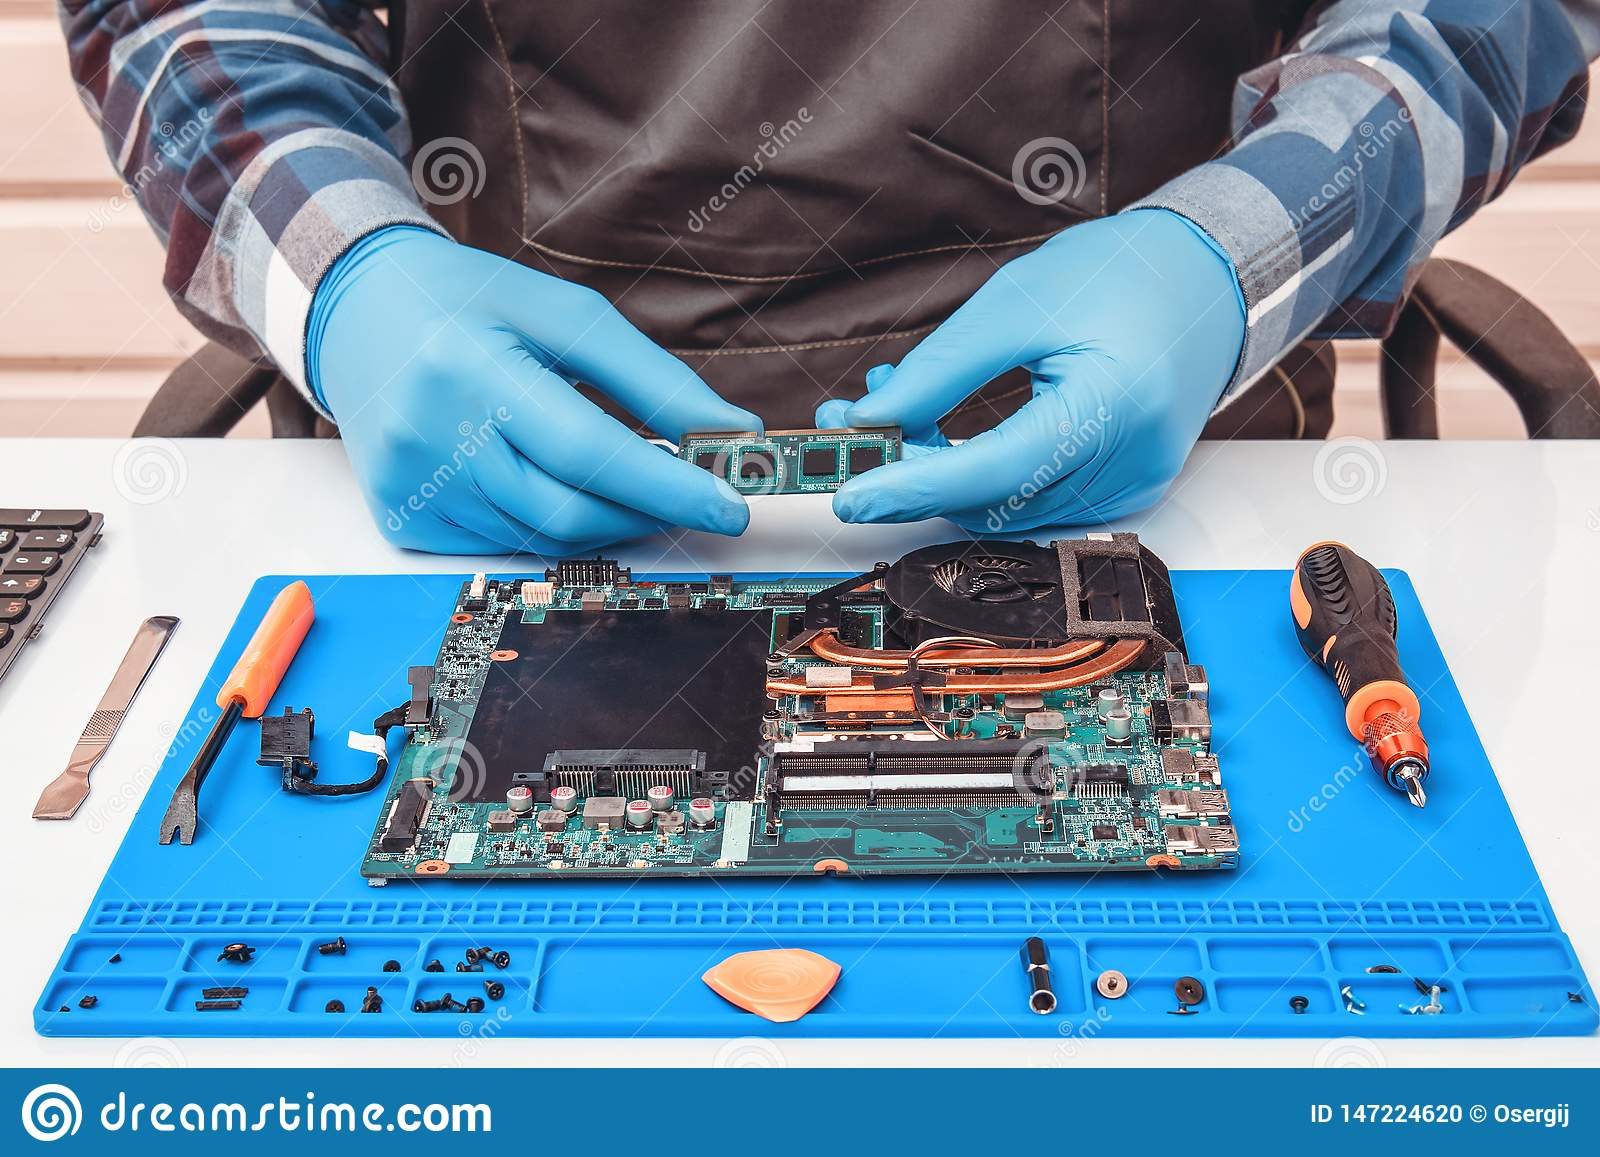 Engineer makes dismantling of RAM for disassembling and repairing a laptop